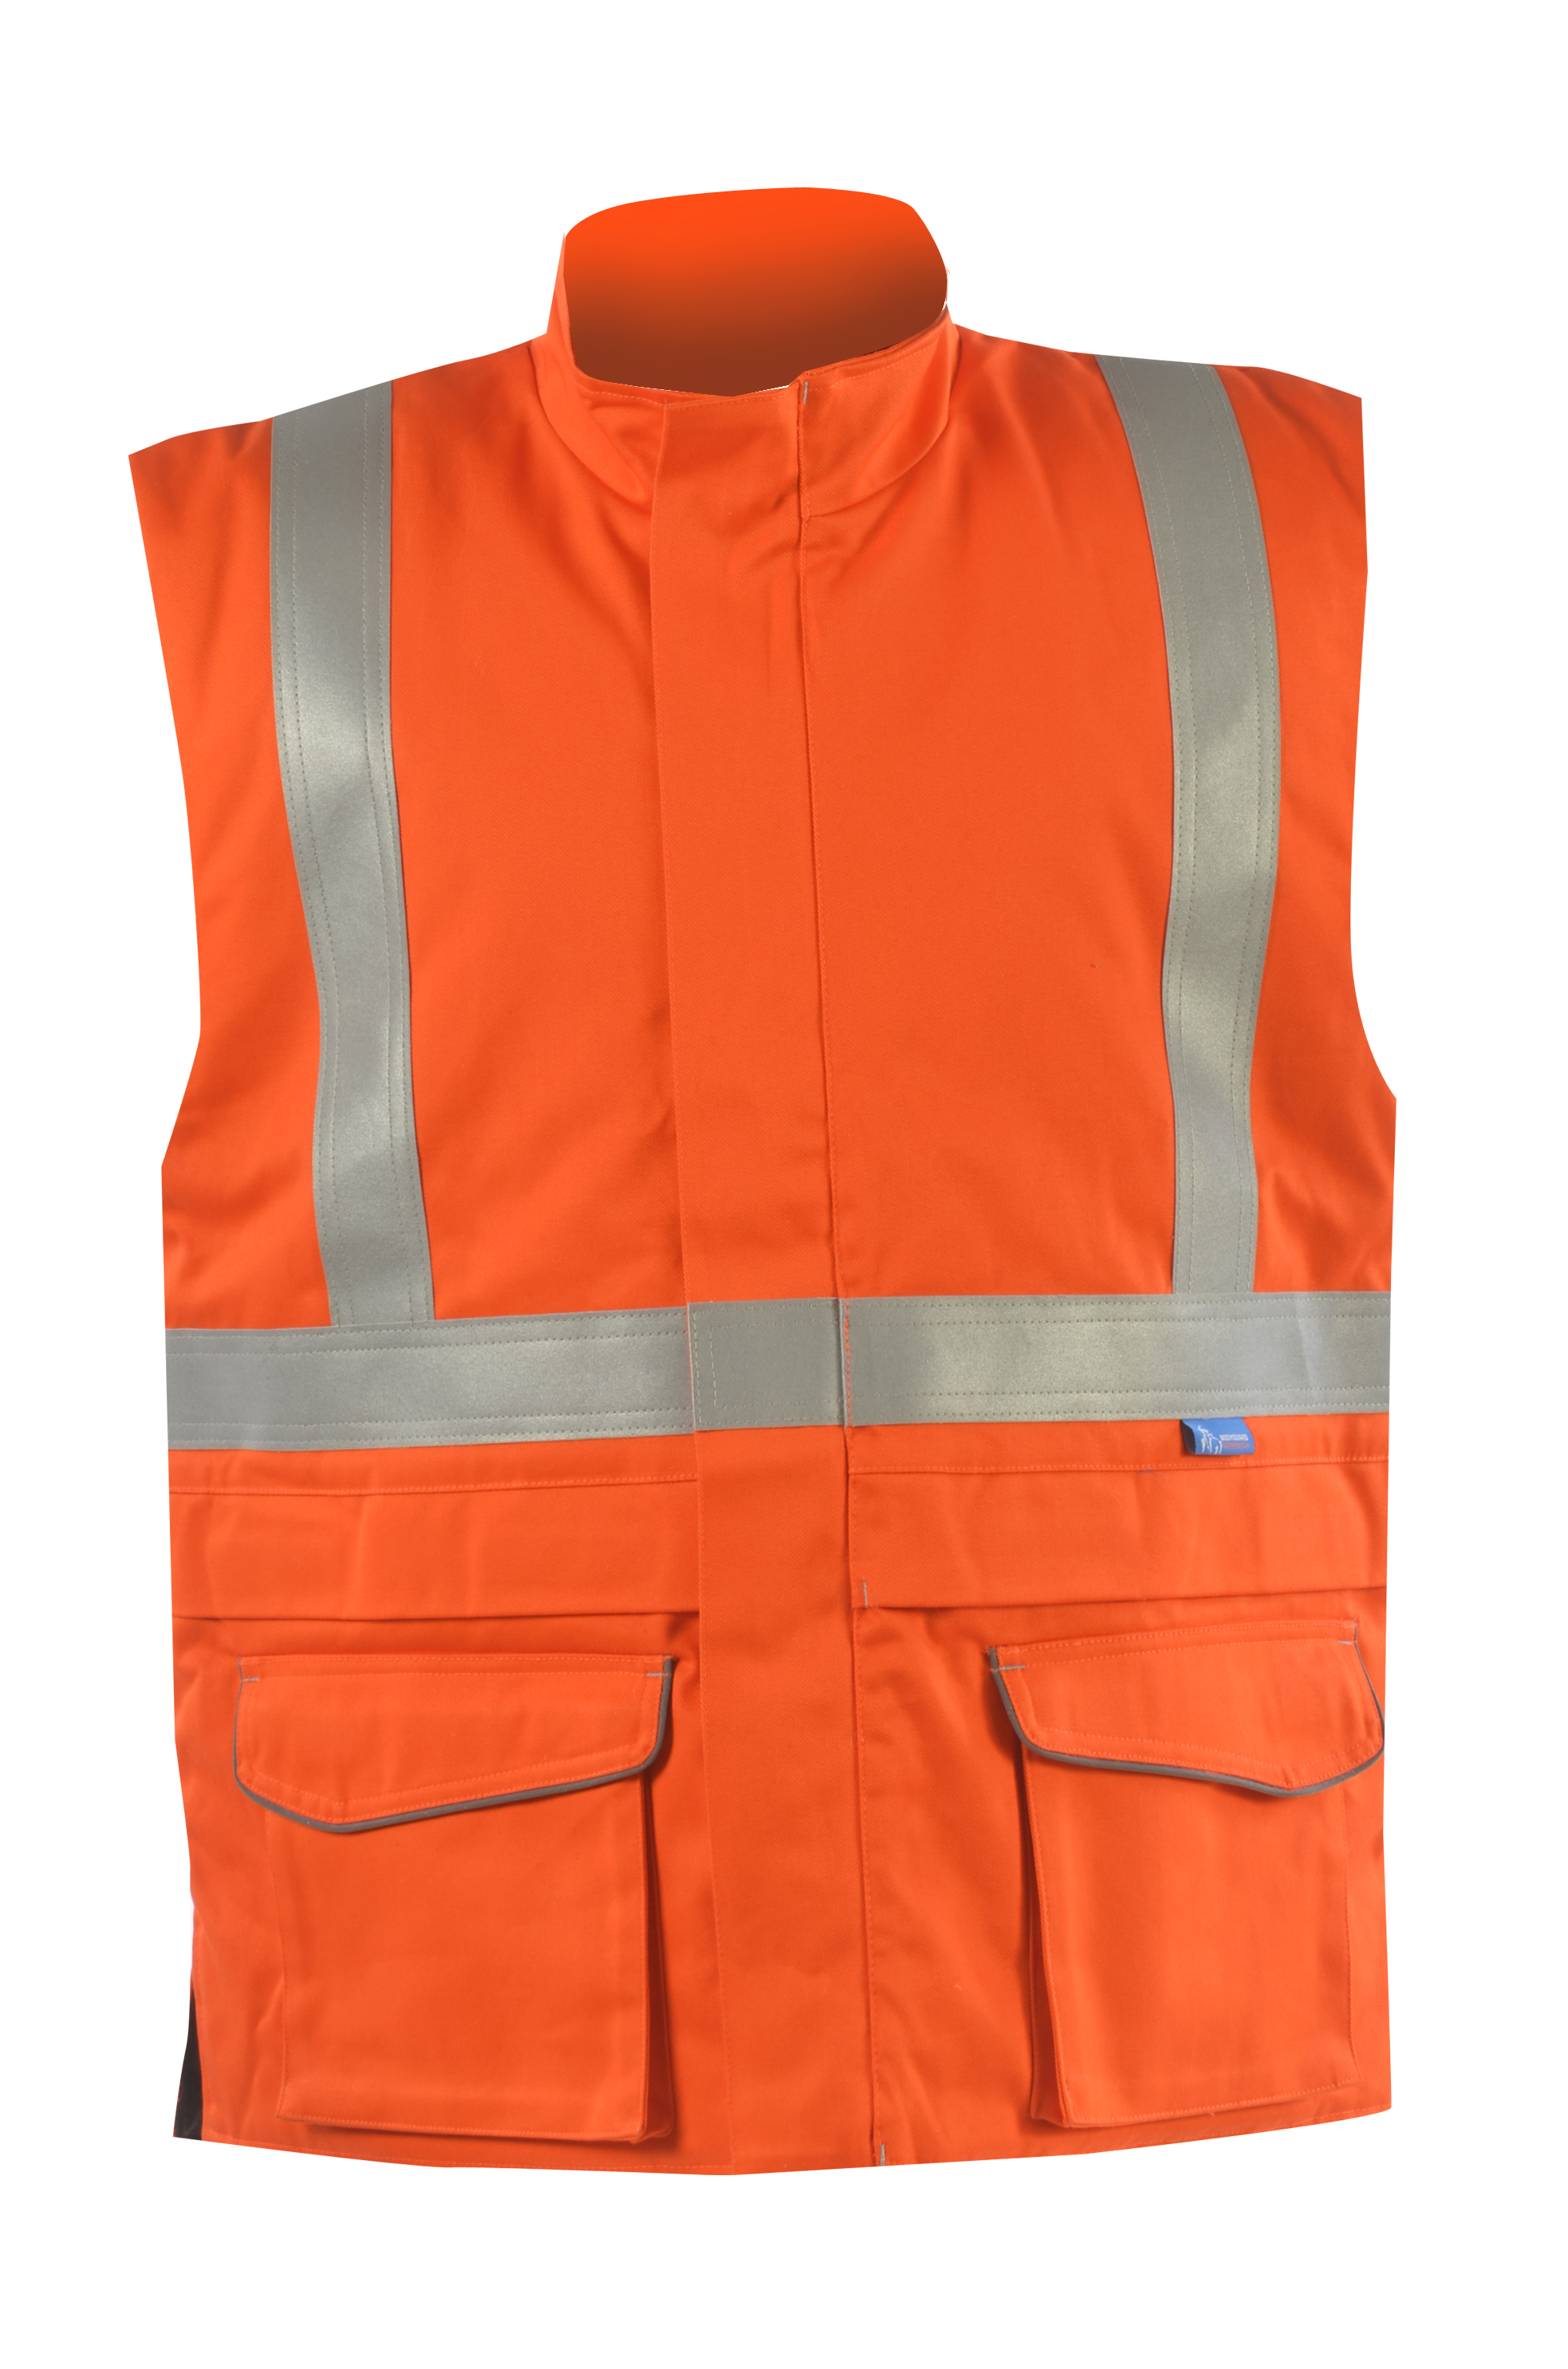 bodyguard-Bodywarmers-Flame-Retardant-Hi-Vis-Orange-Bodywarmer